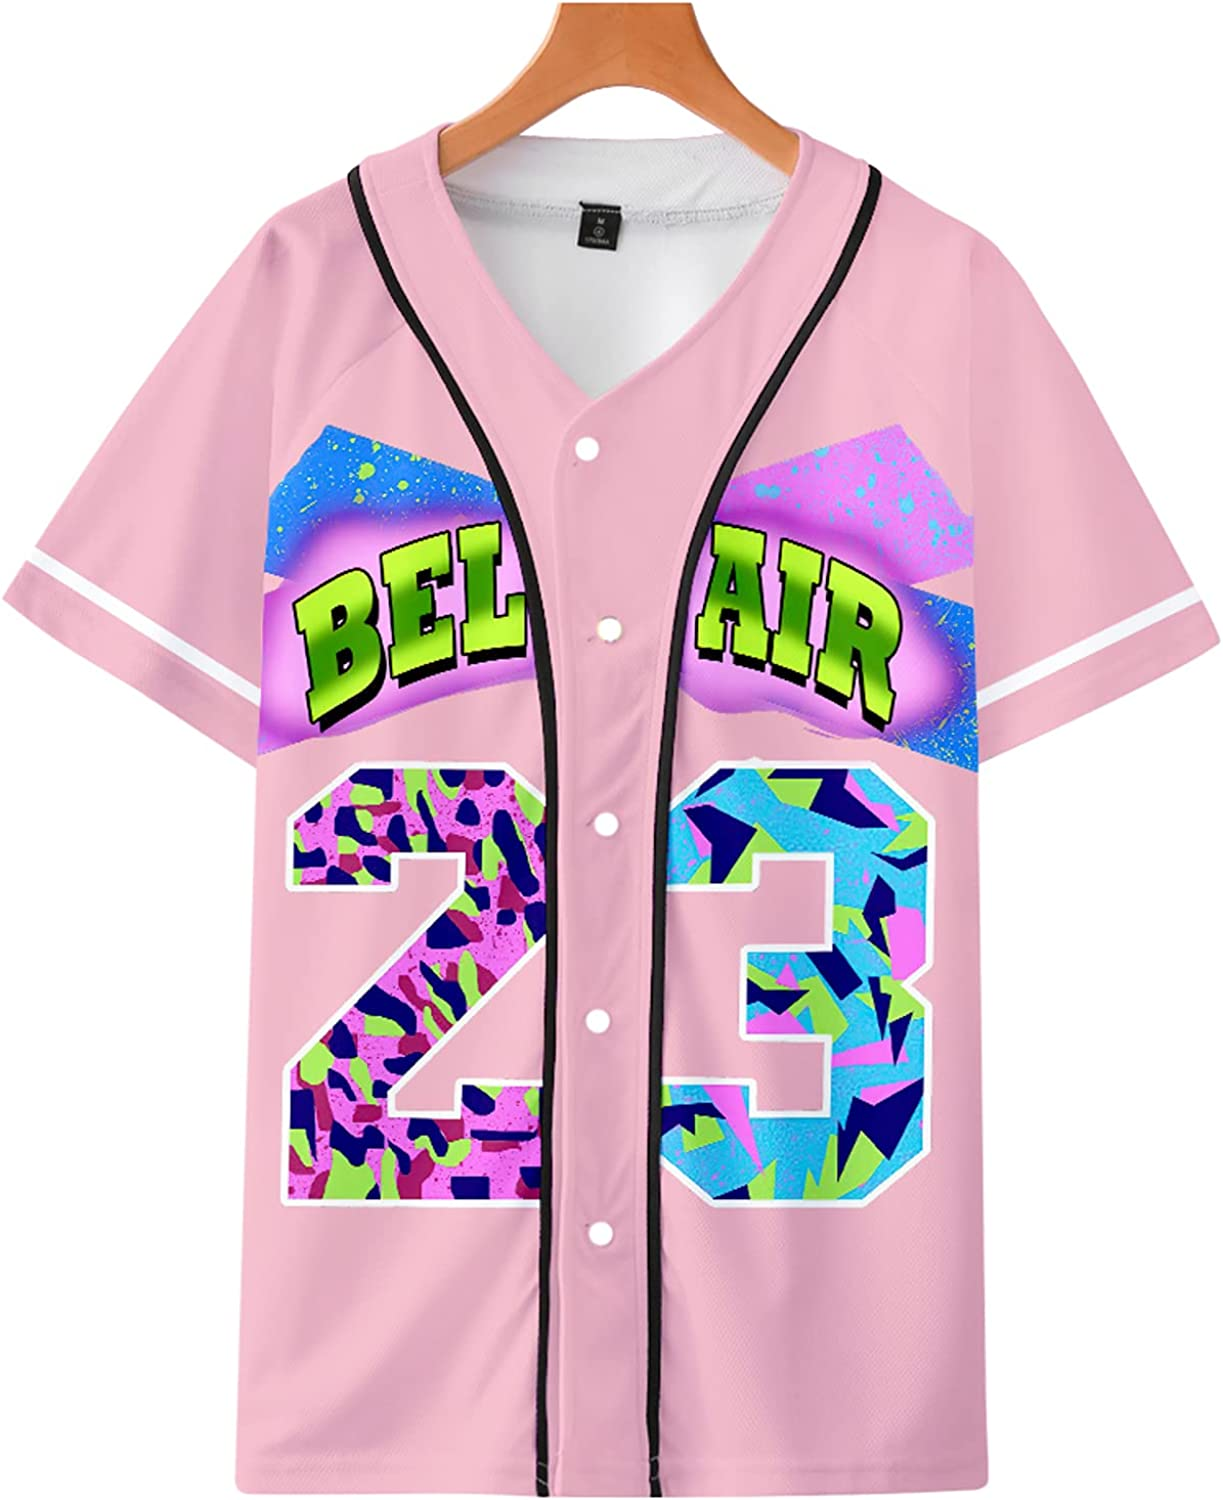 kxybz Unisex Bel Air 23 Baseball Tampa Mall Theme Hi 90s Jersey, Party SEAL limited product